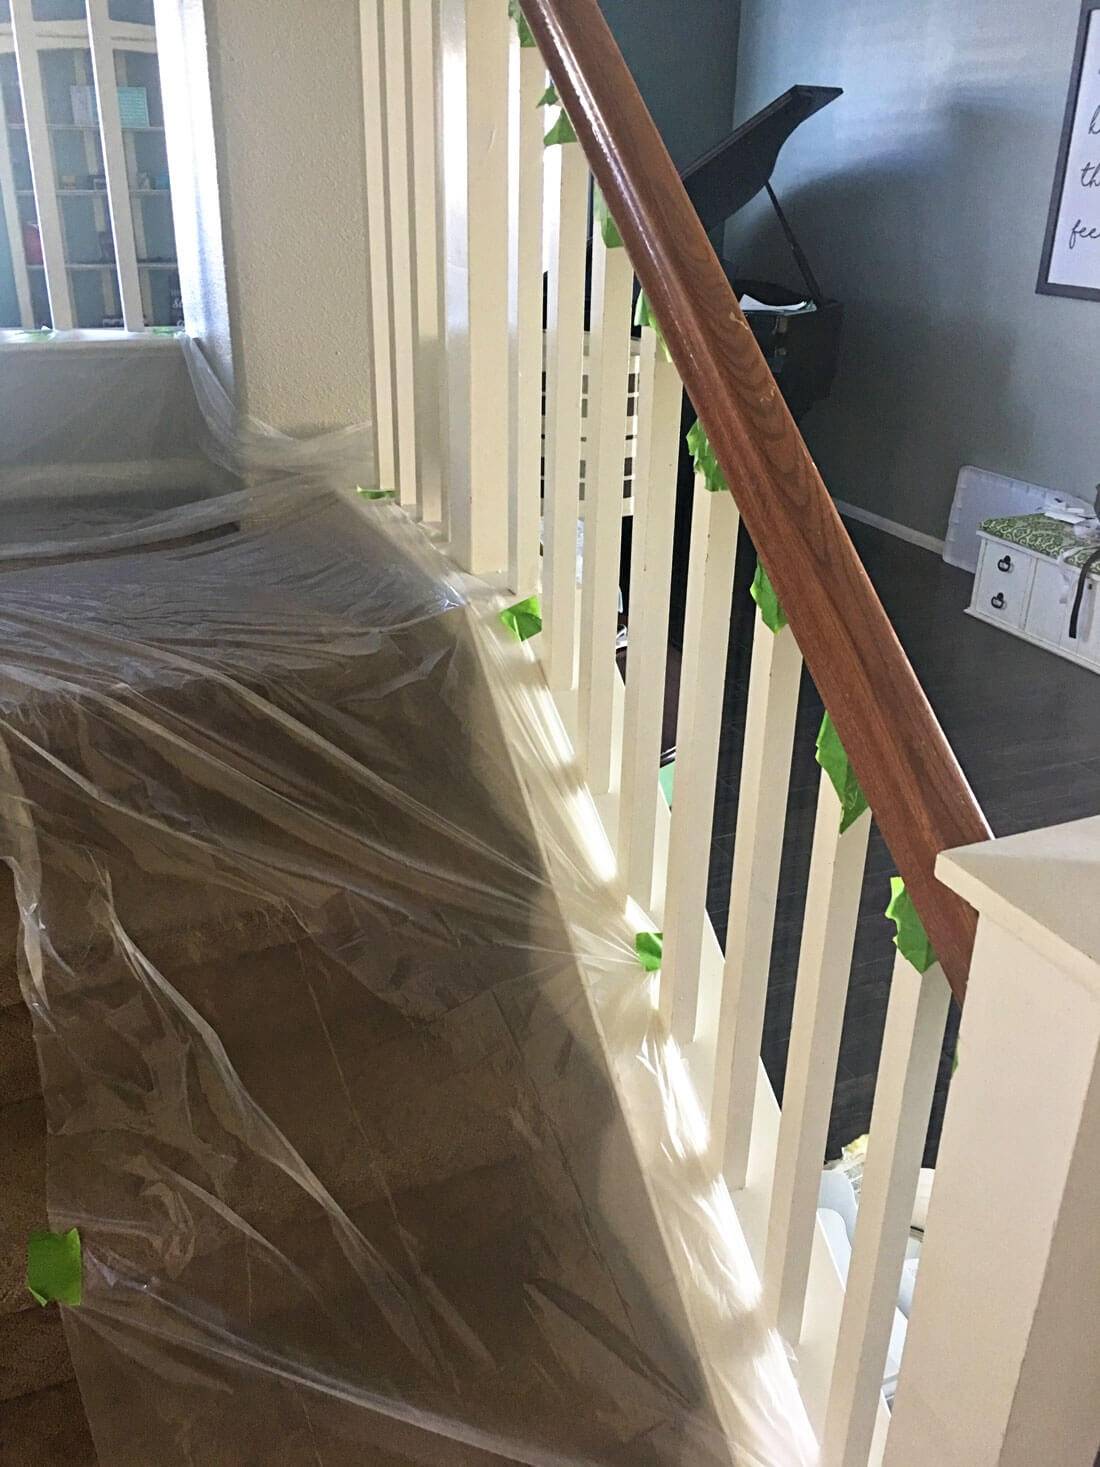 How To Paint Your Stair Railing And Banister Black From 30Daysblog | Two Tone Stair Railing | White | Indoor | Antique | Mansion | Country Style